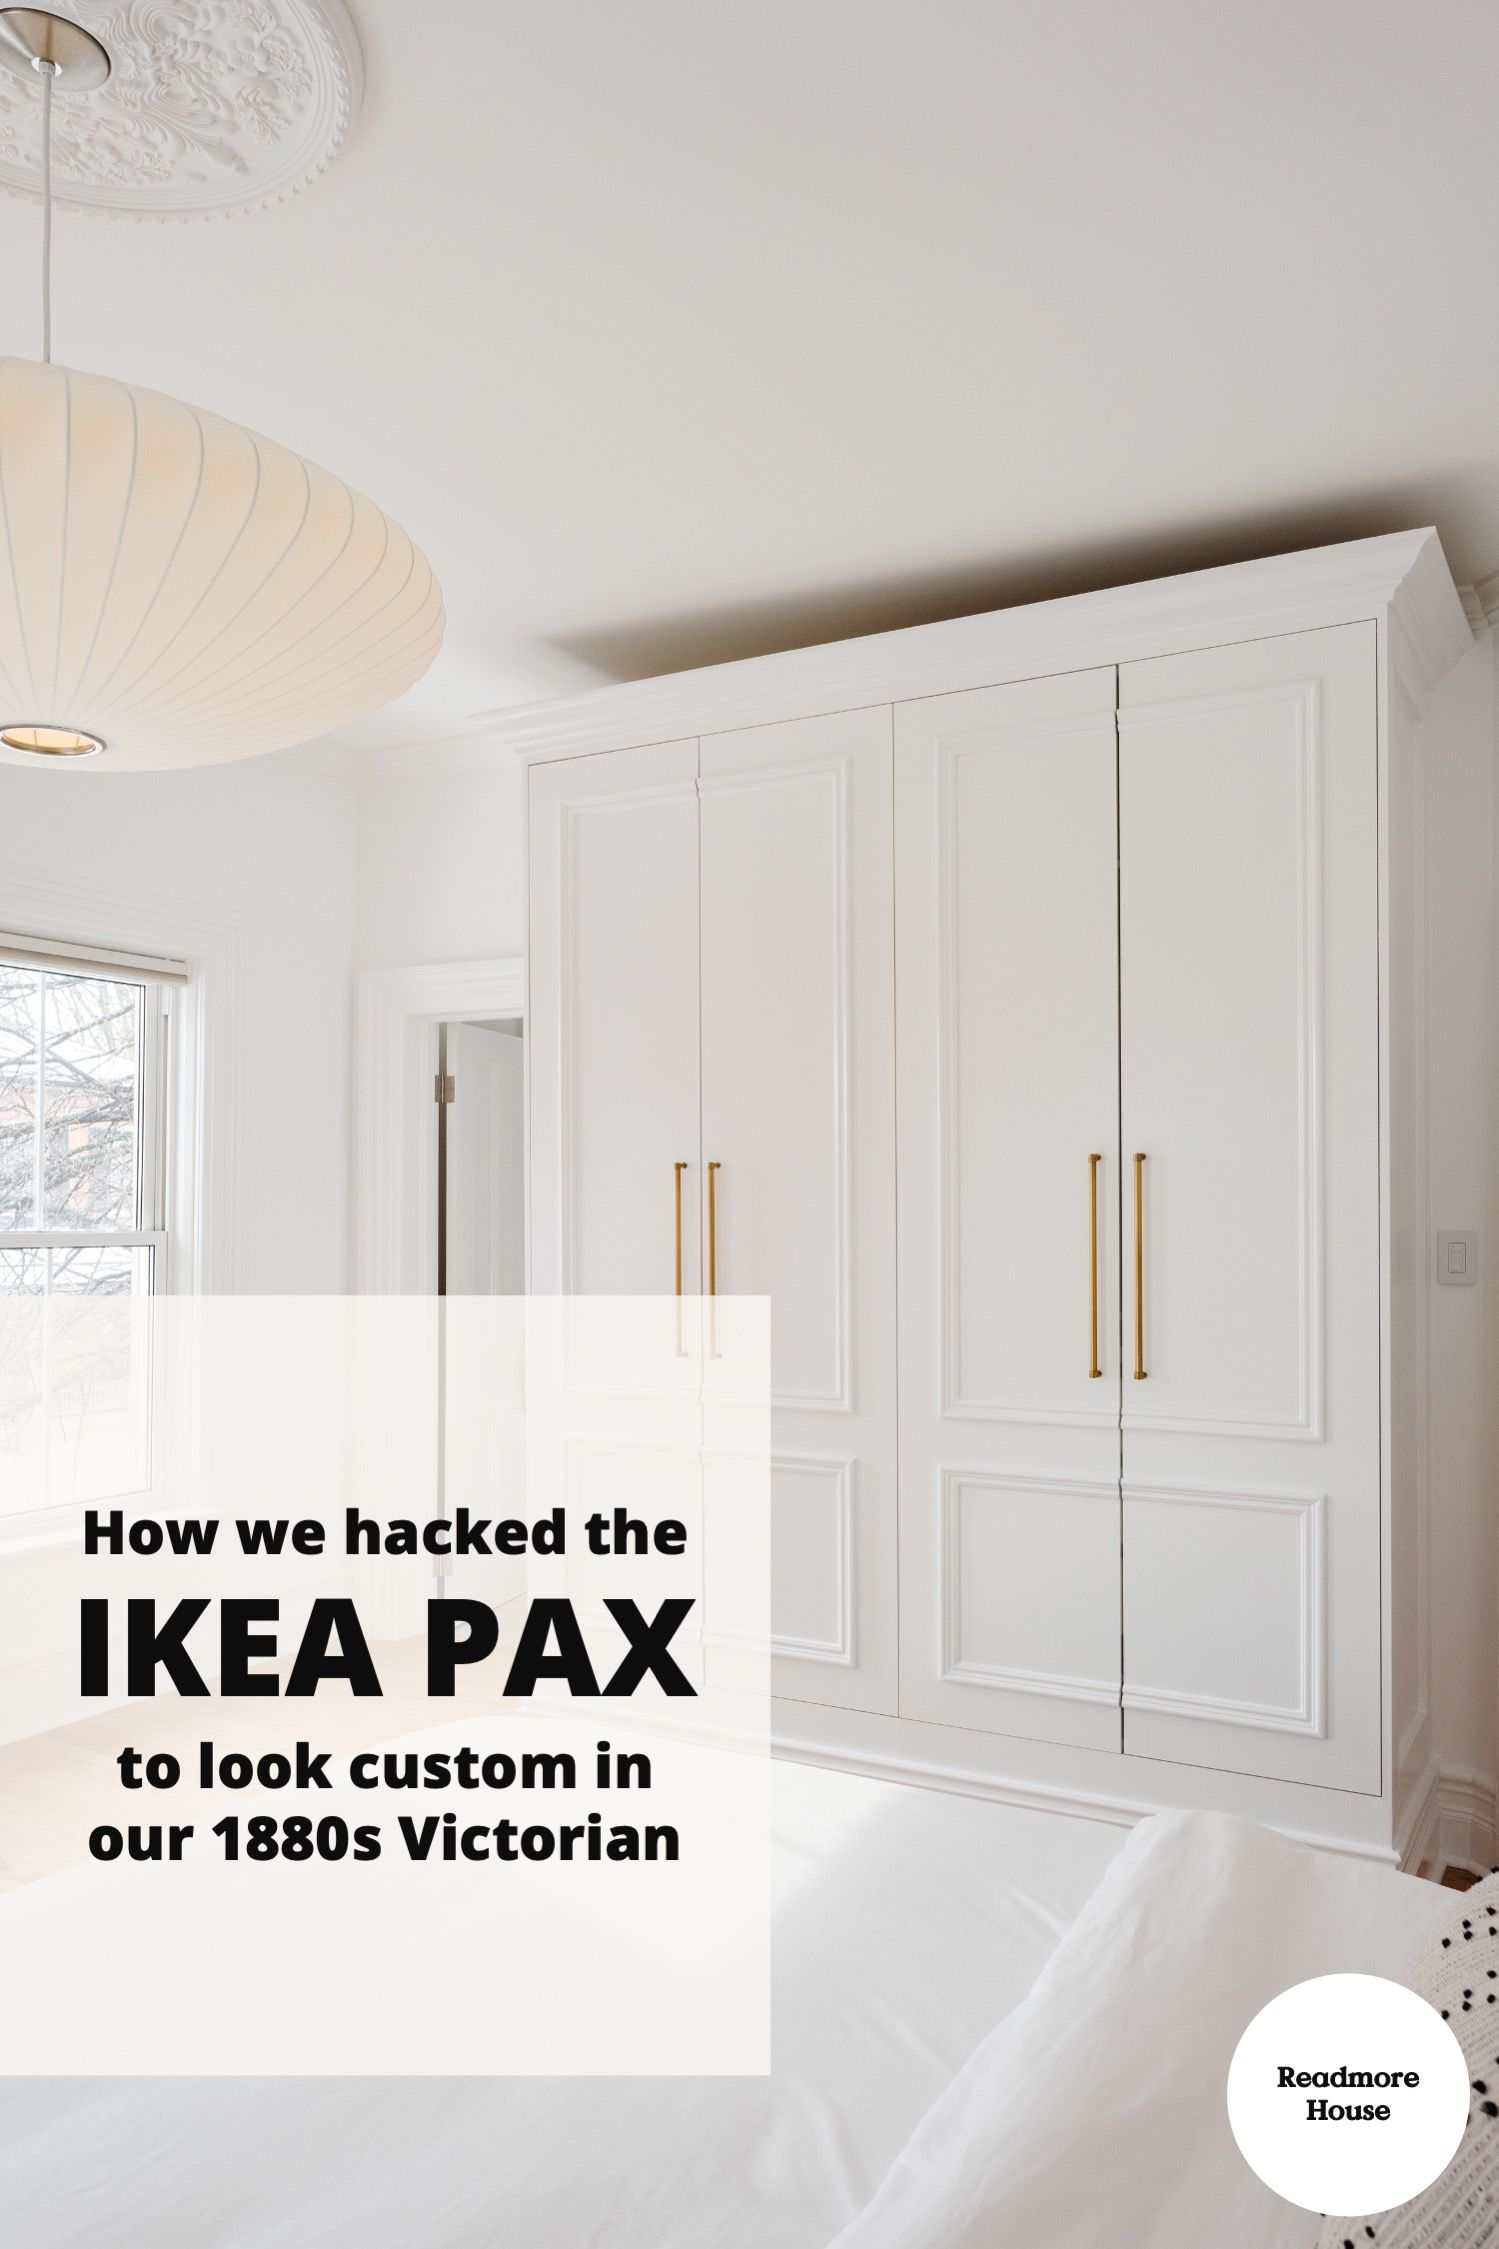 How we hacked Ikea PAX to add a closet in our Victorian home